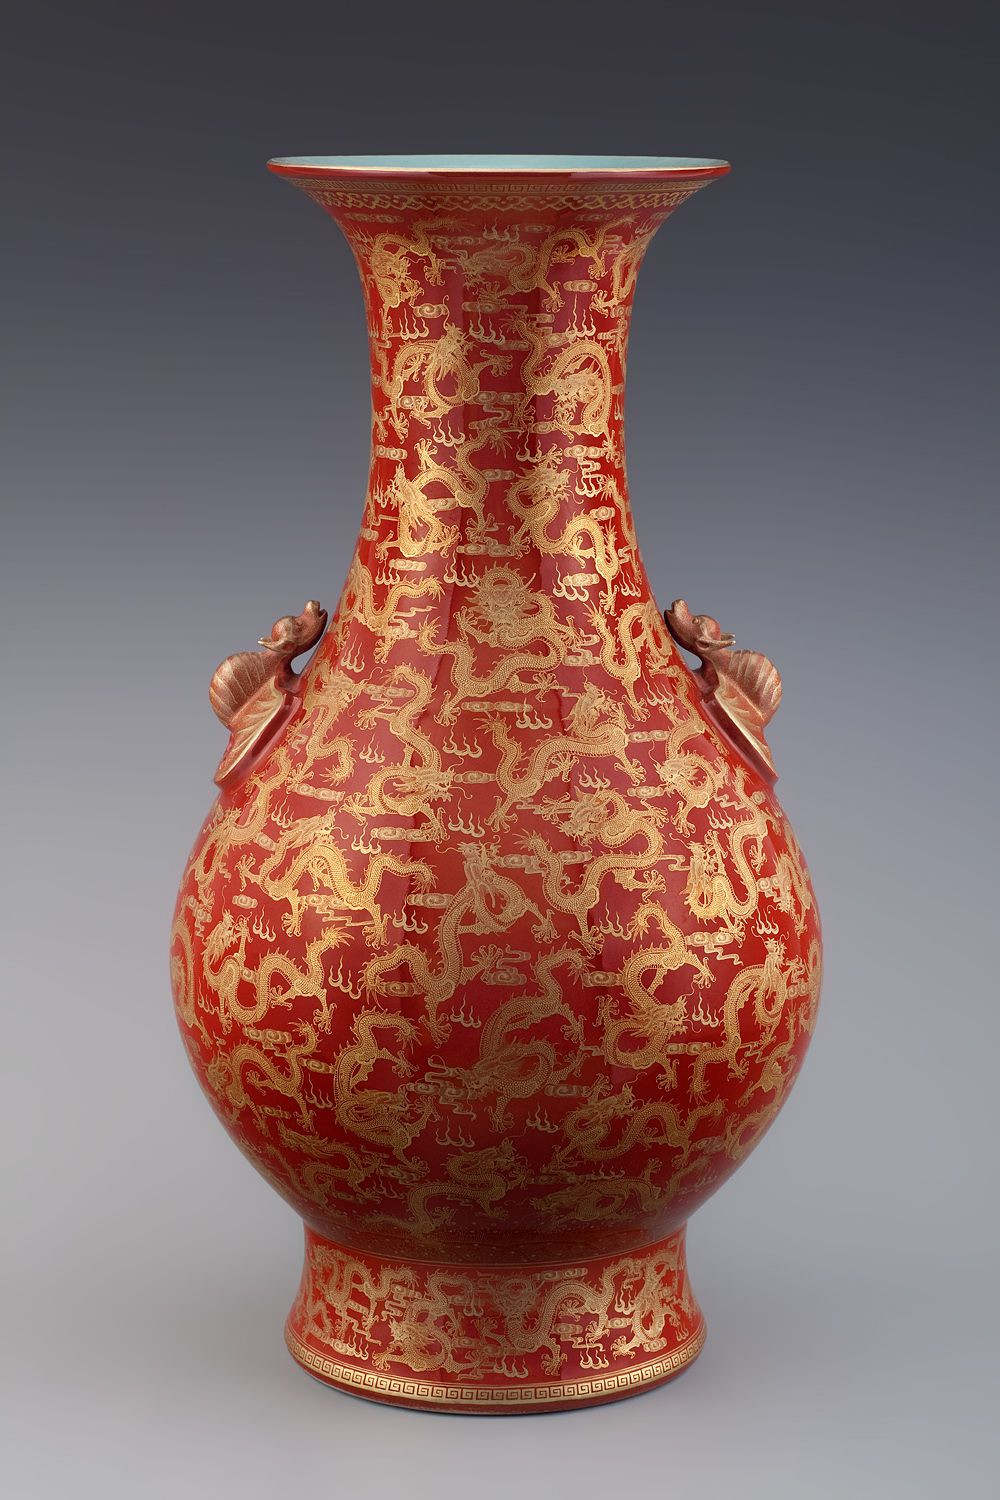 qianlong vase of pin by i€ on ancient china pinterest ancient china and pottery in 8ecc0db878825d66fb41bfba7a47df2f